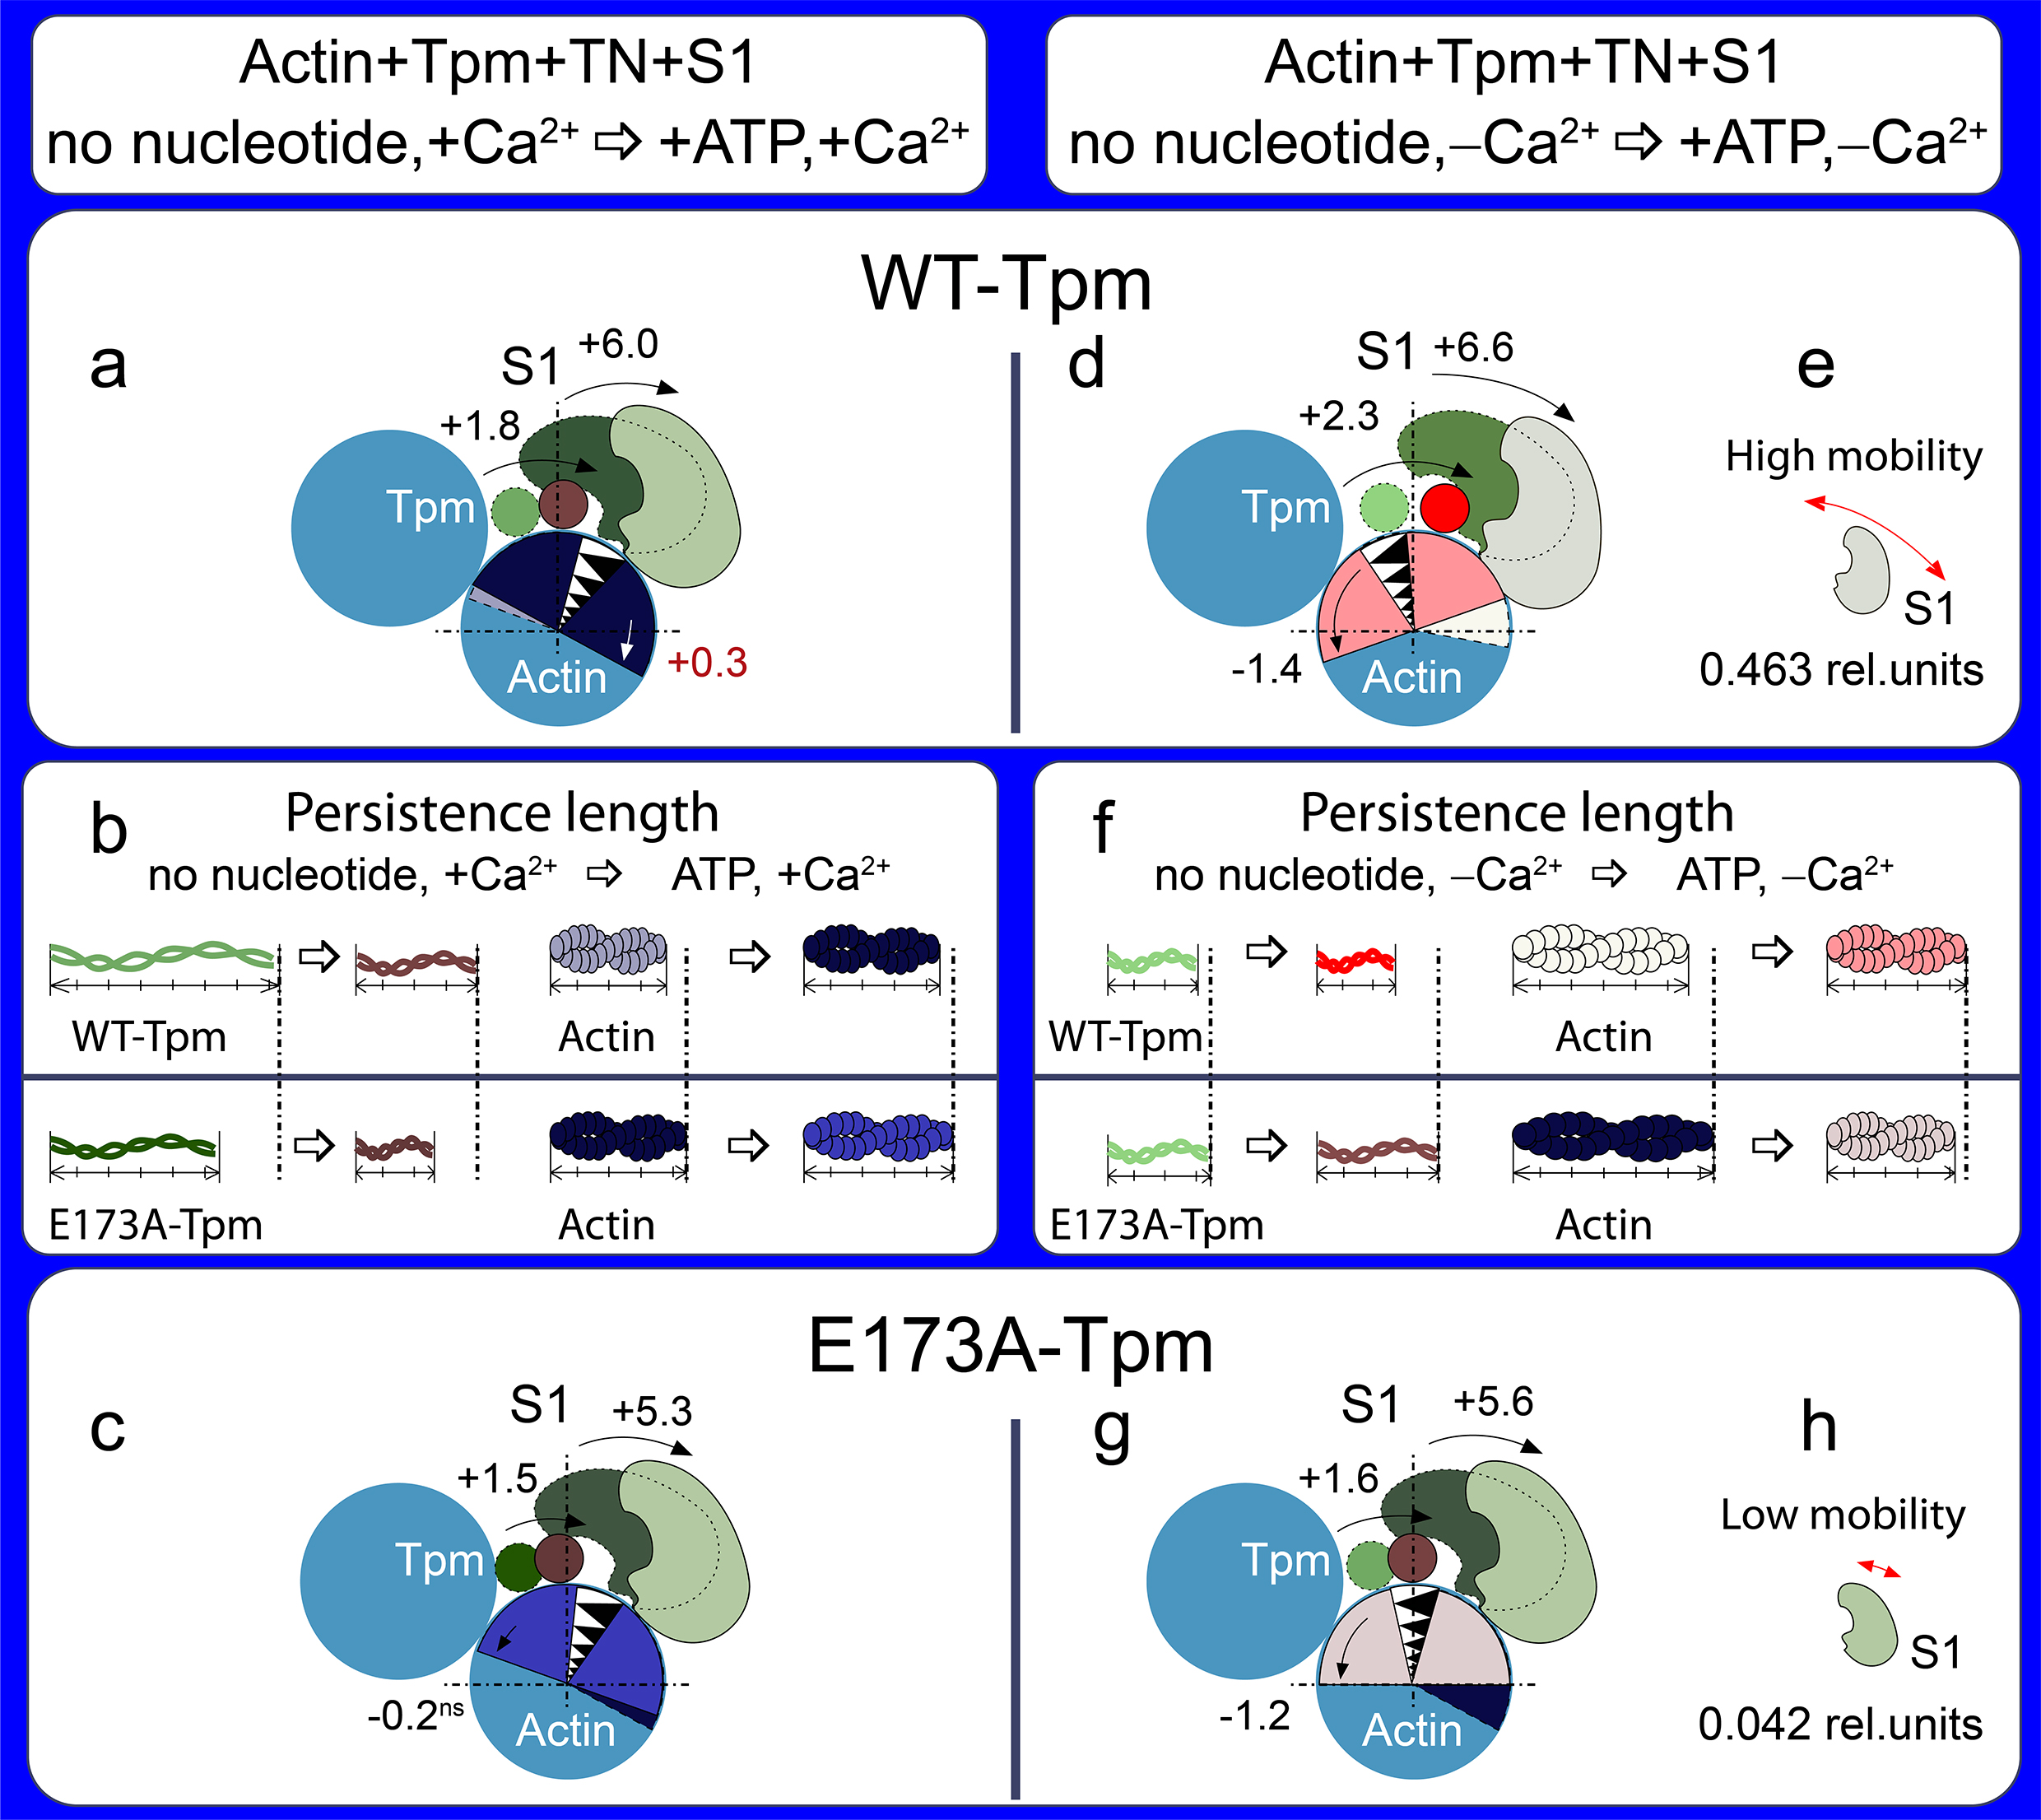 A schematic view of the changes in tropomyosin localization and spatial rearrangements of actin and S1 due to the E173A mutation in tropomyosin